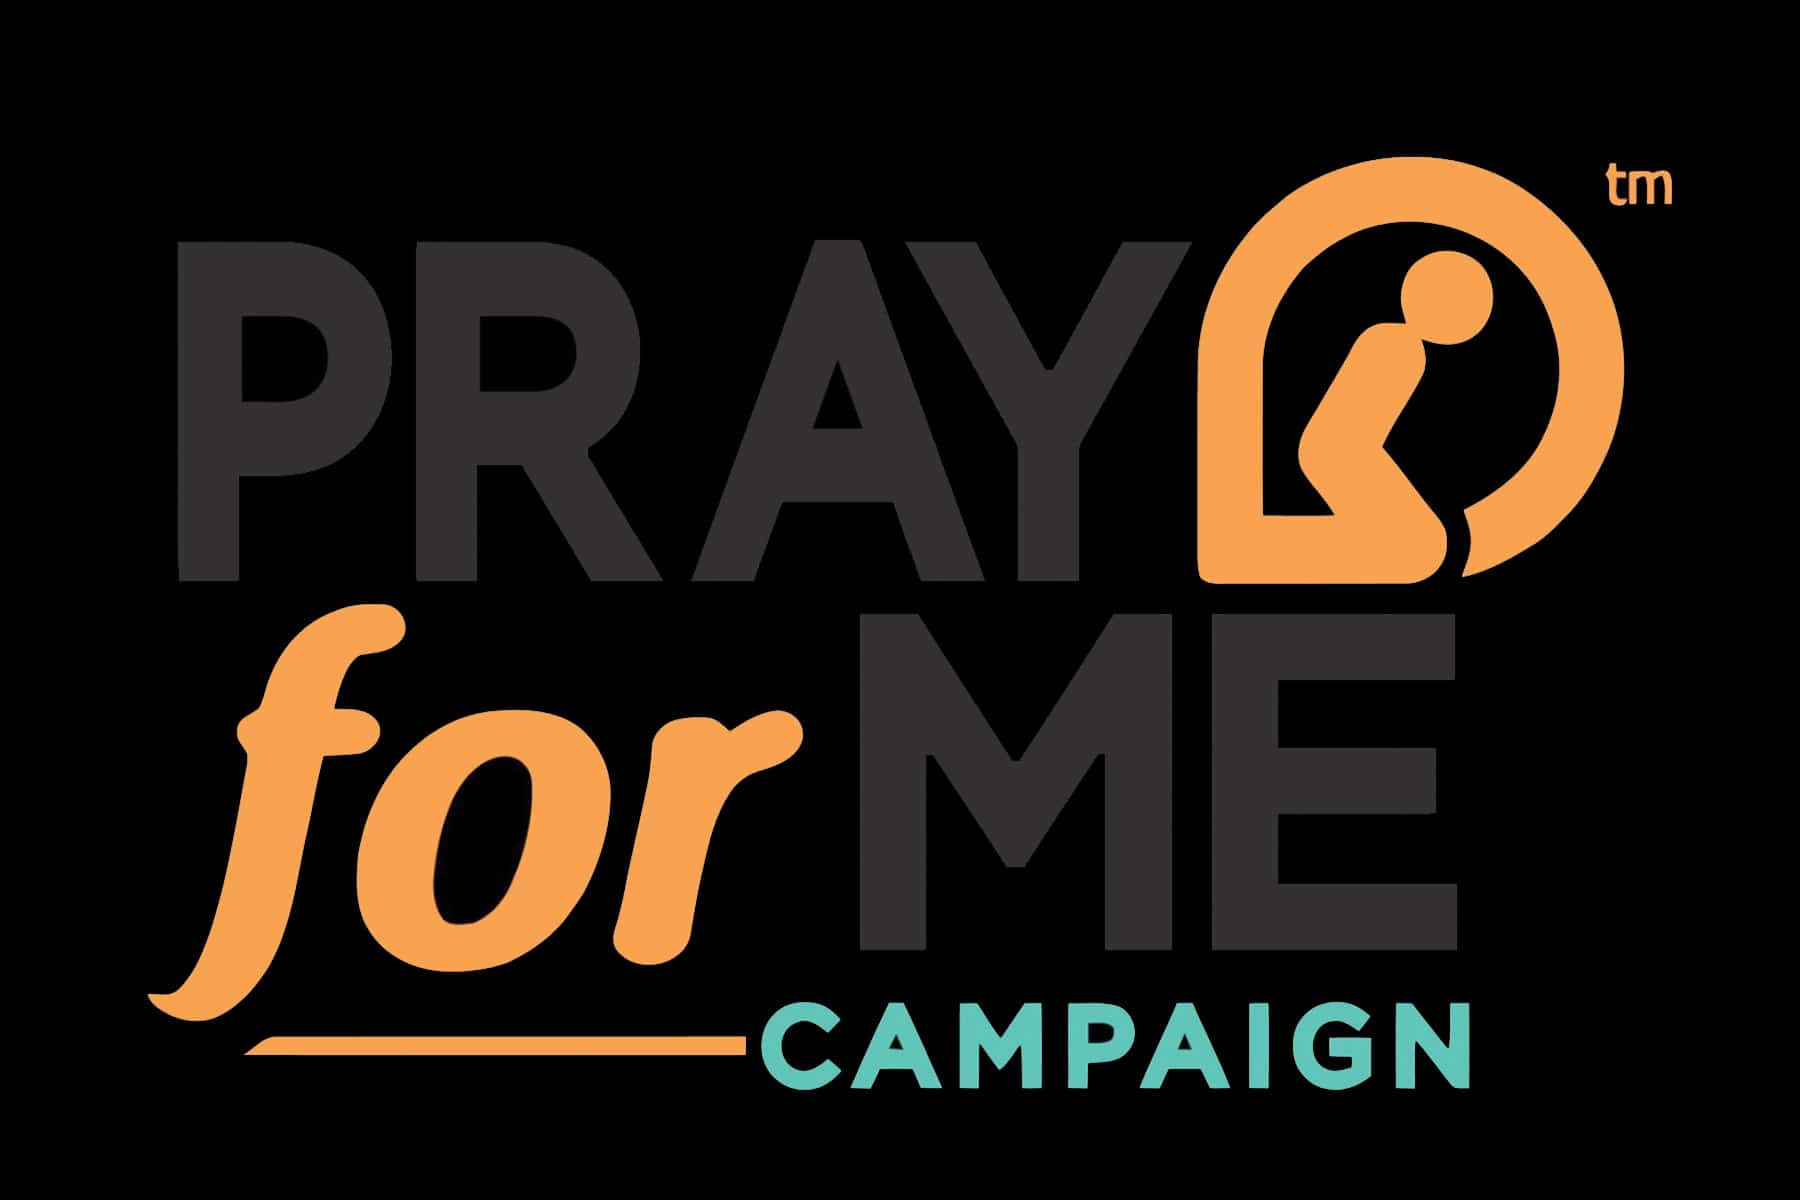 Pray for Me Campaign